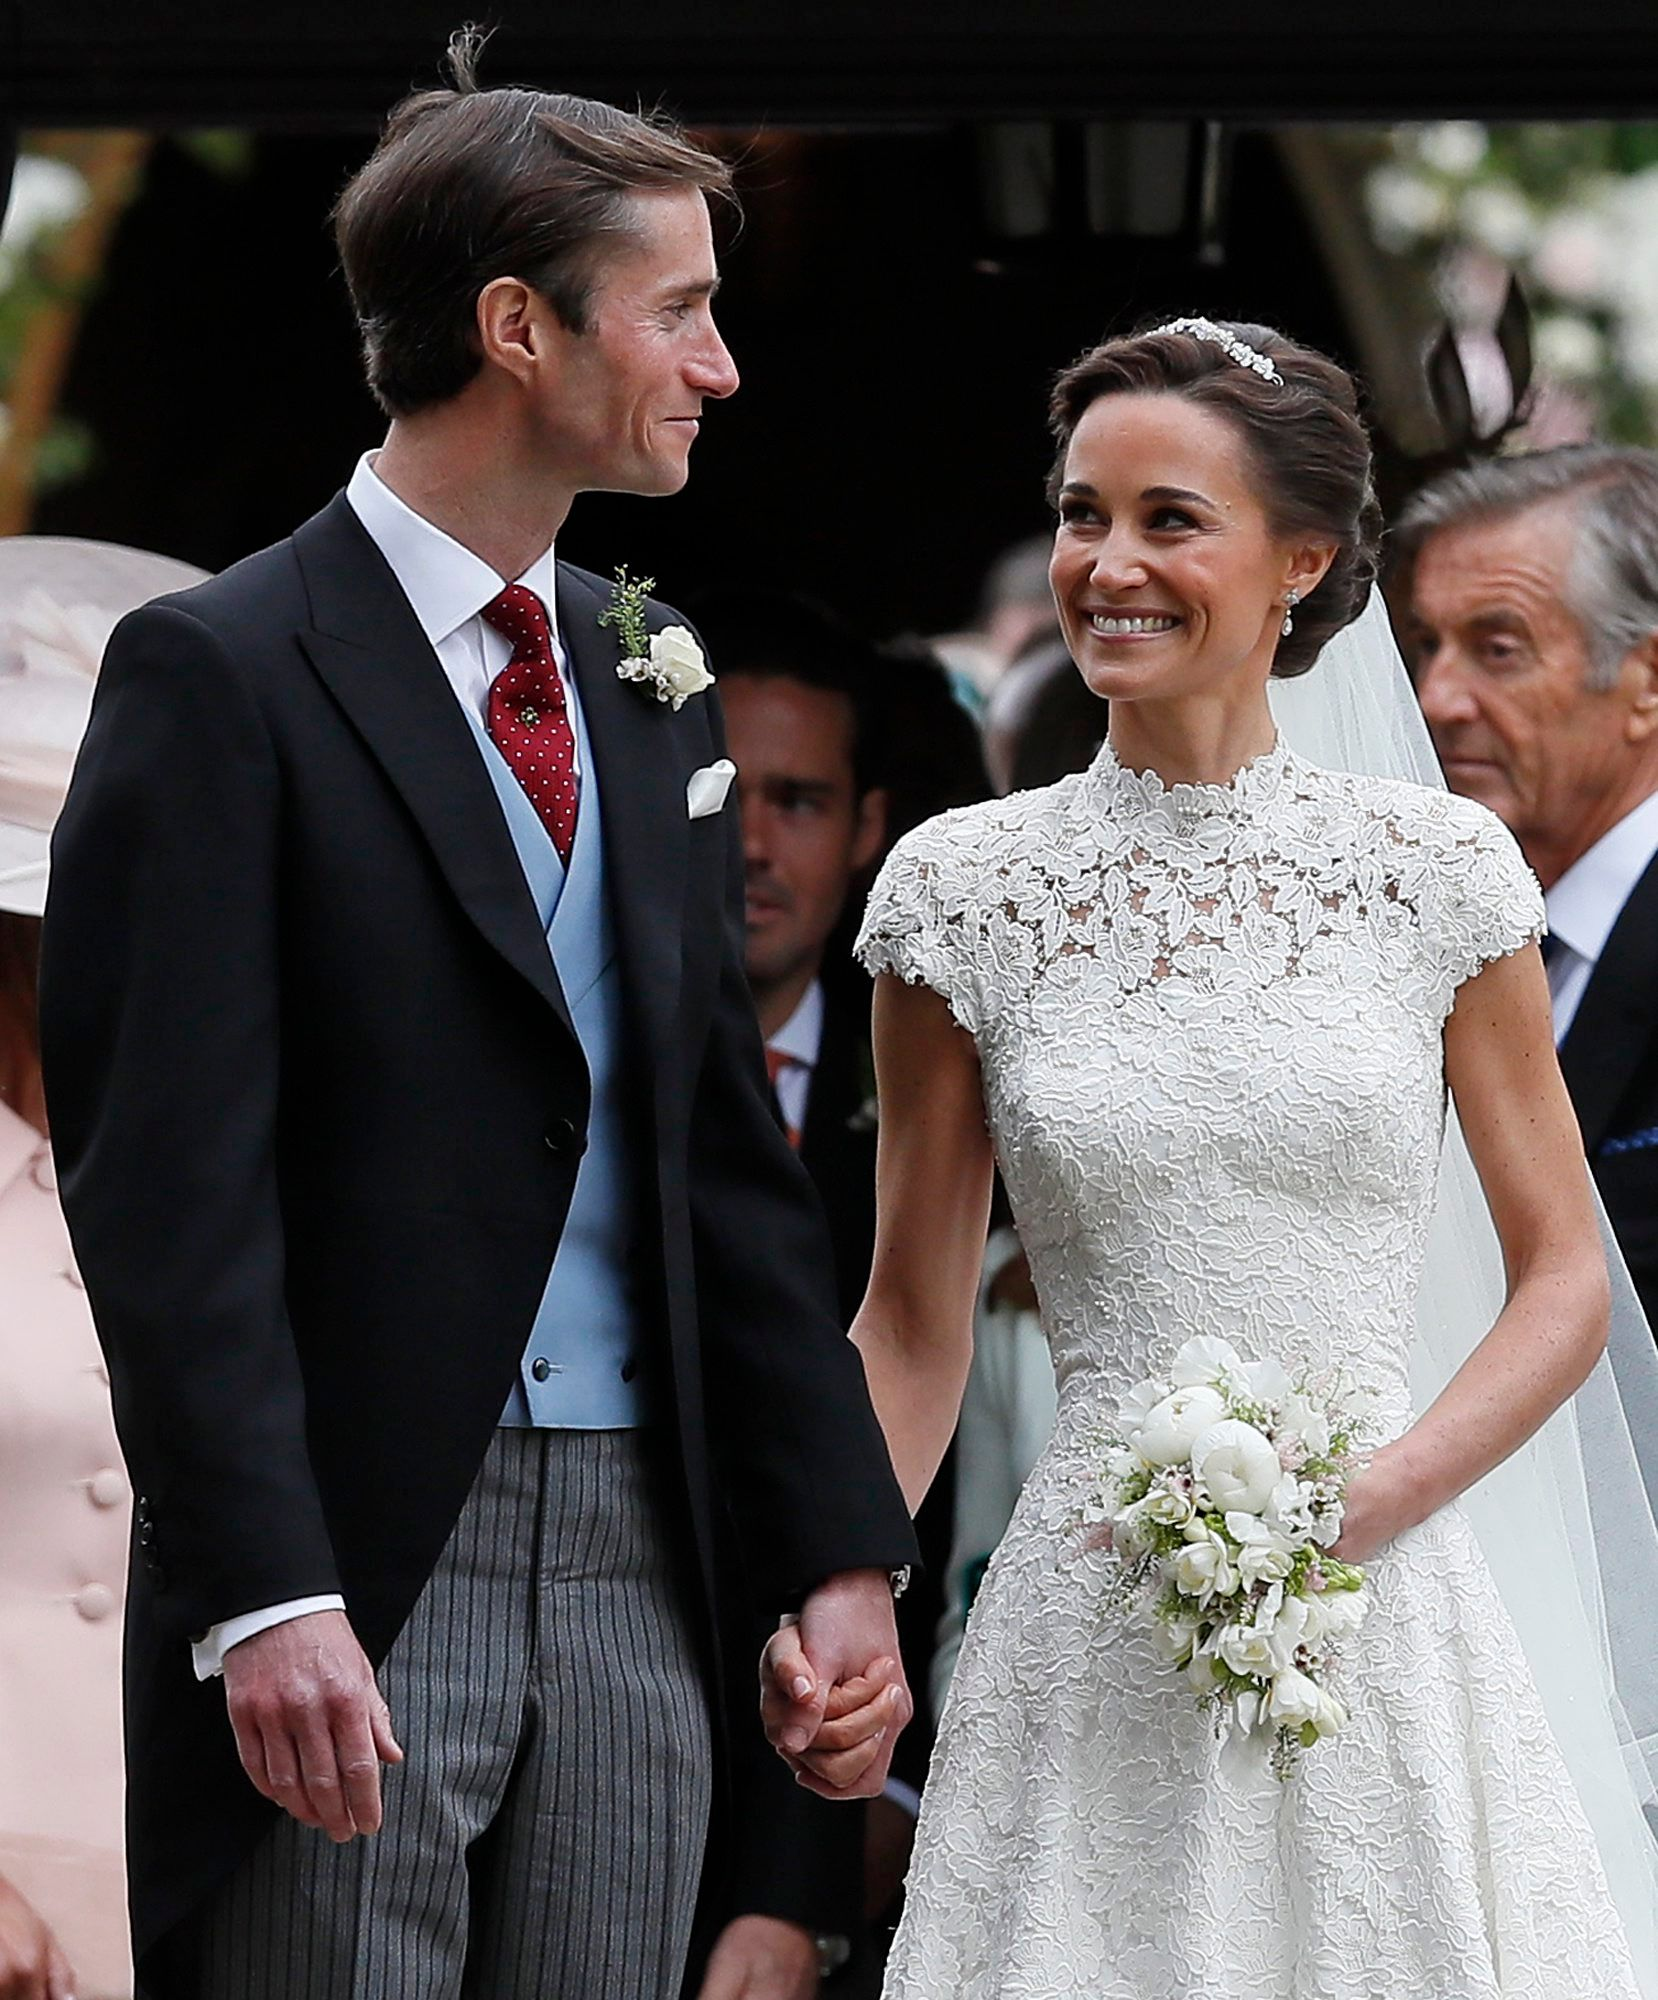 Kate Middleton's Sister Pippa Middleton Is Expecting Second Child